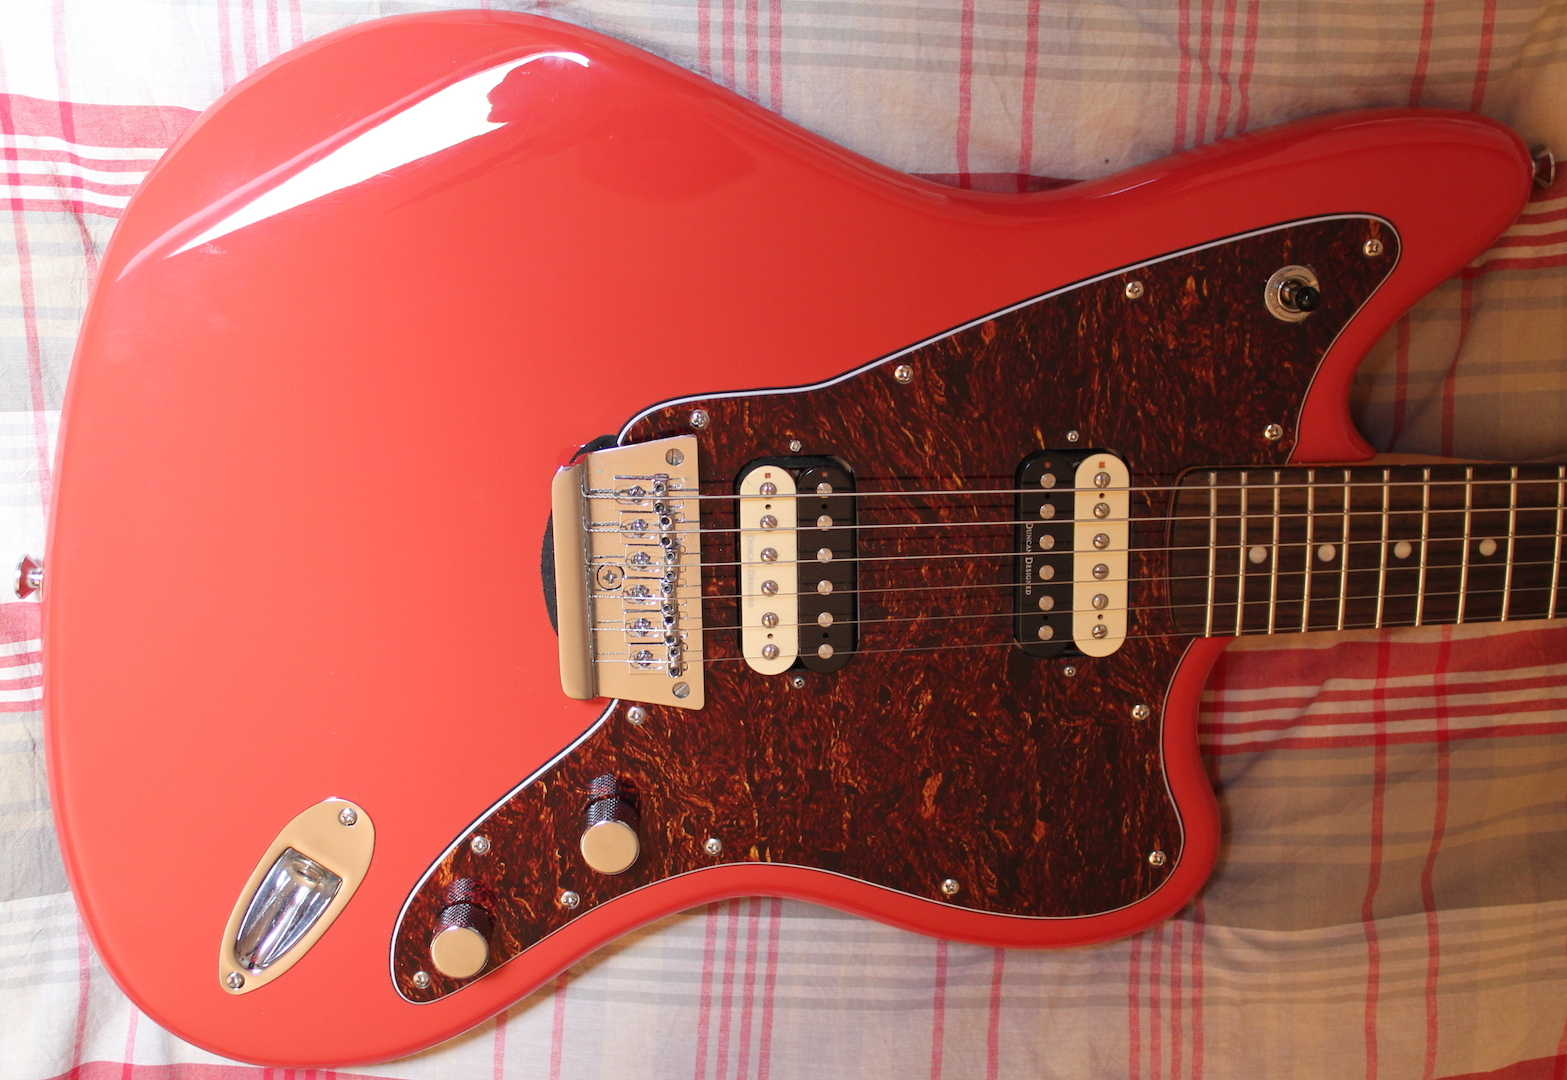 squier vintage modified jaguar hh fiesta red rosewood image 865237. Cars Review. Best American Auto & Cars Review